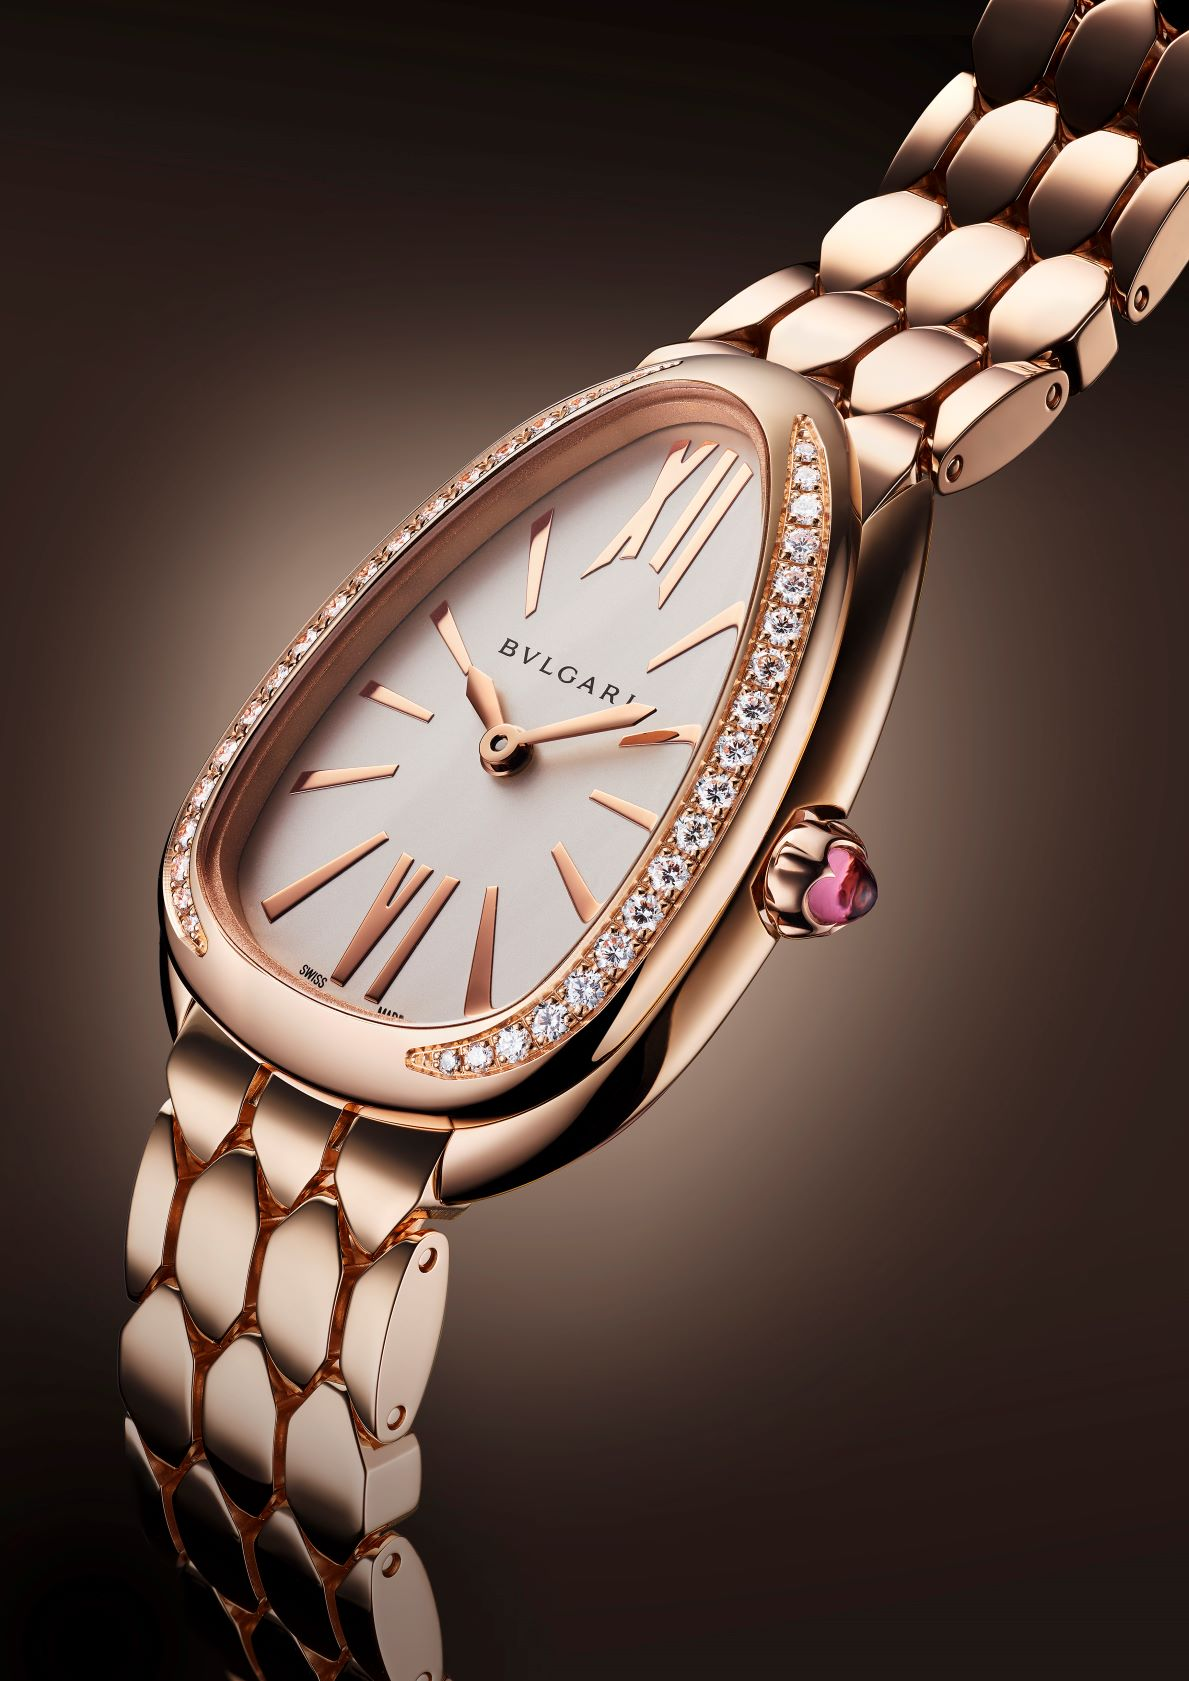 Bulgari's New Luxury Watches bulgari's new luxury watches Discover Bulgari's New Luxury Watches Bulgaris New Luxury Watches